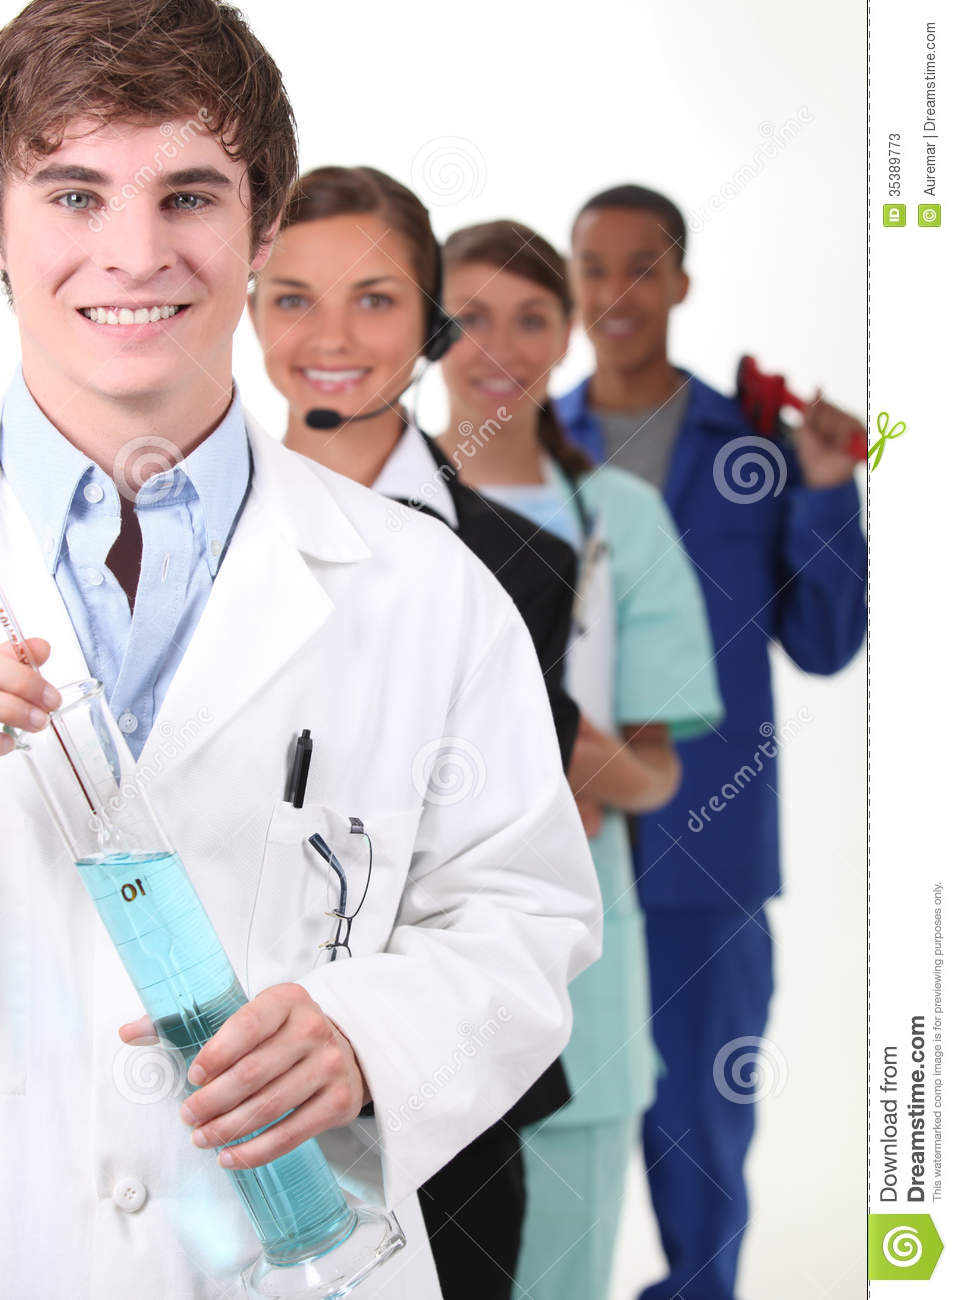 People Occupations Jobs And Community At: People With Fulfilling Careers Stock Photos